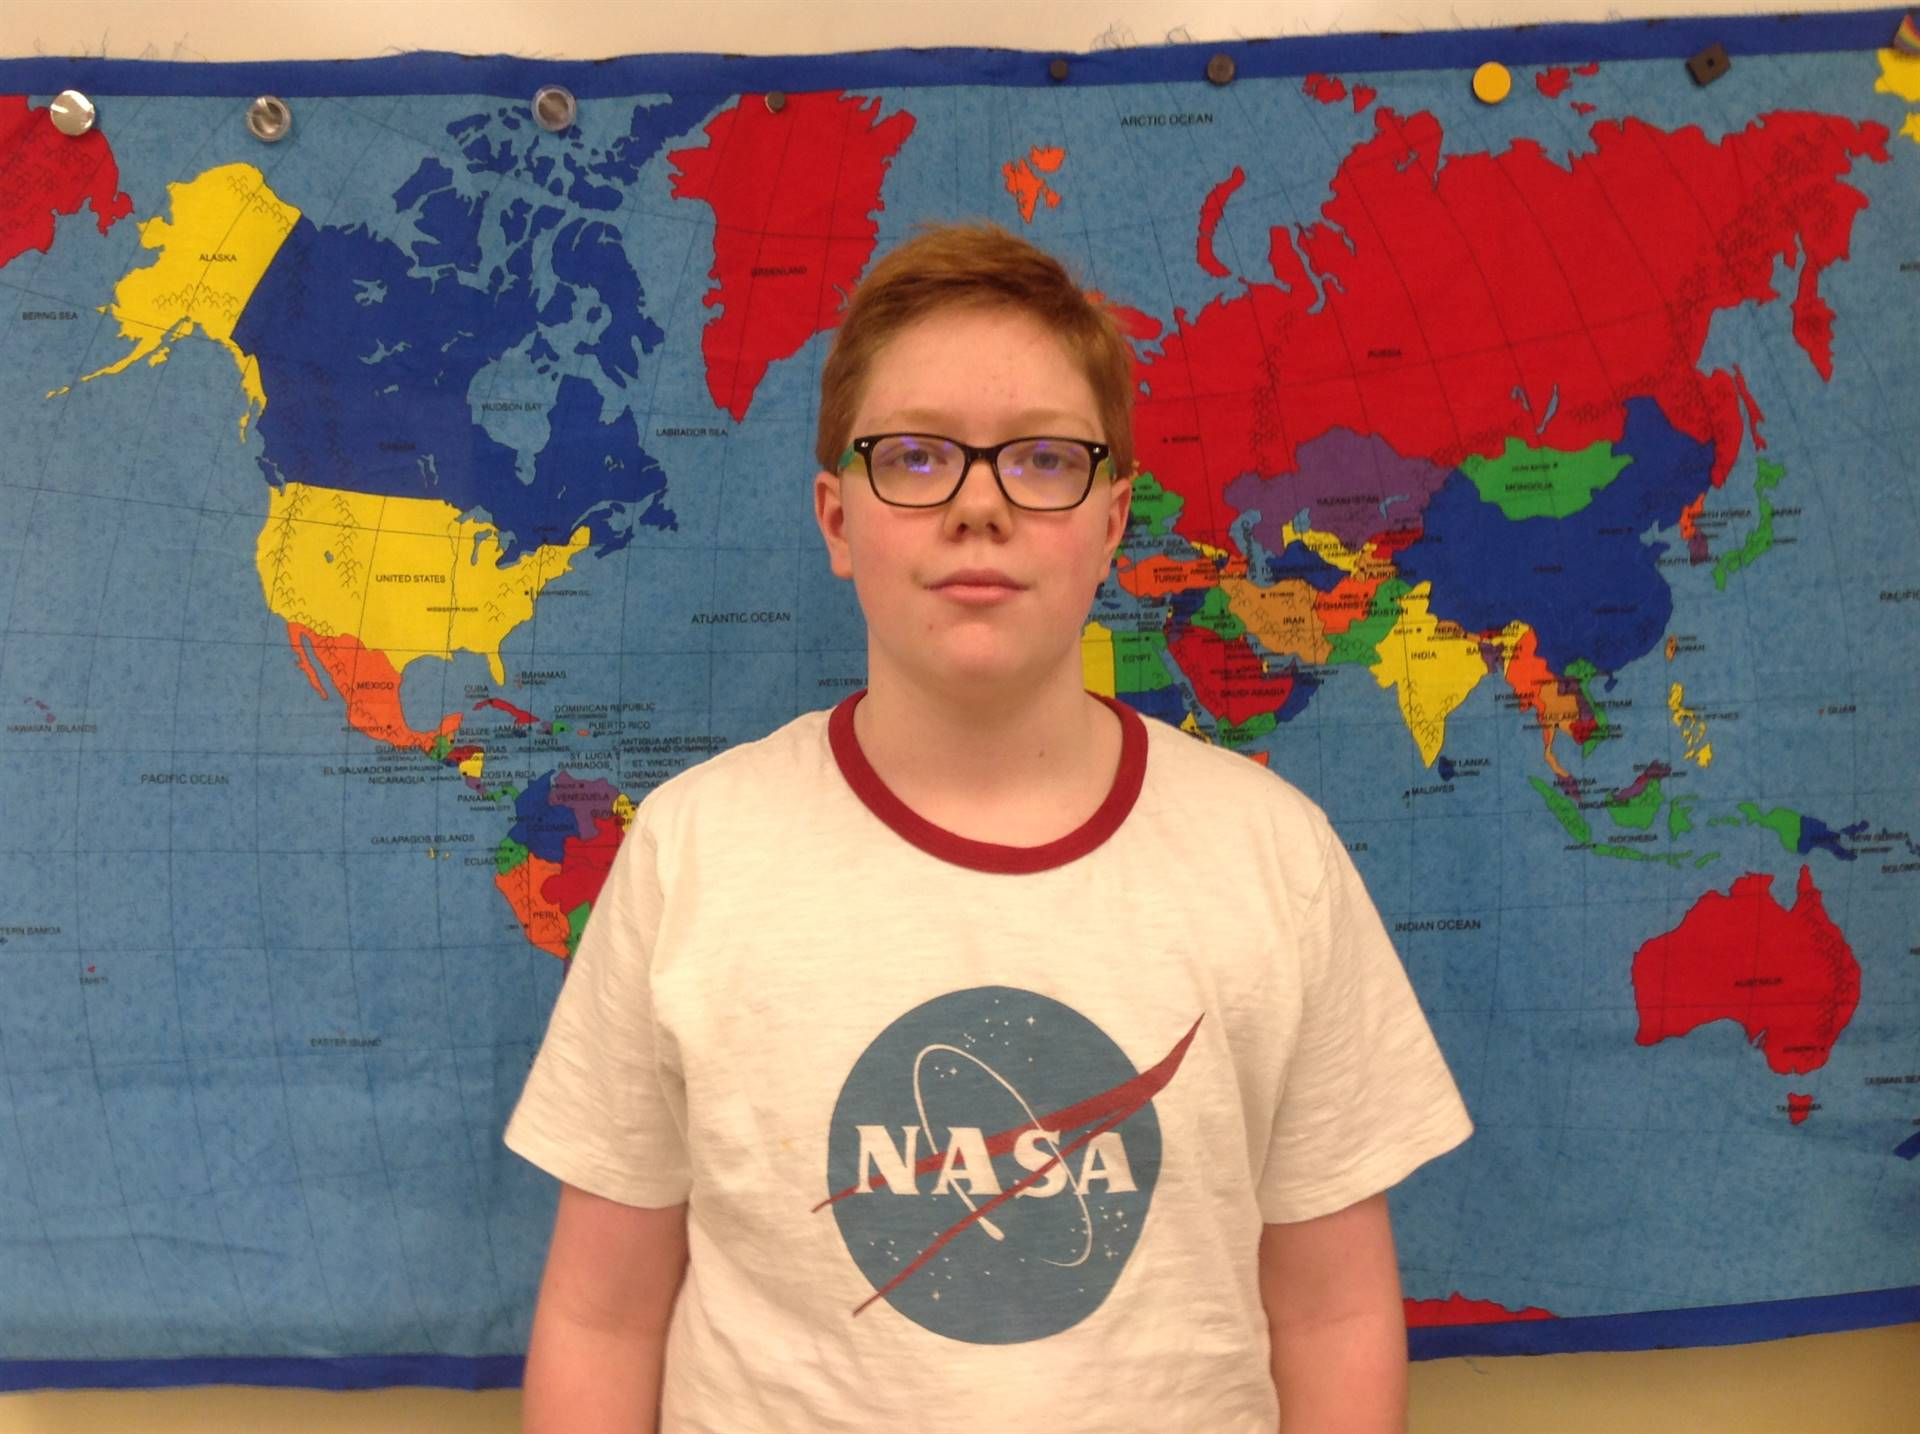 6th Grader who Participated in Geography Bee